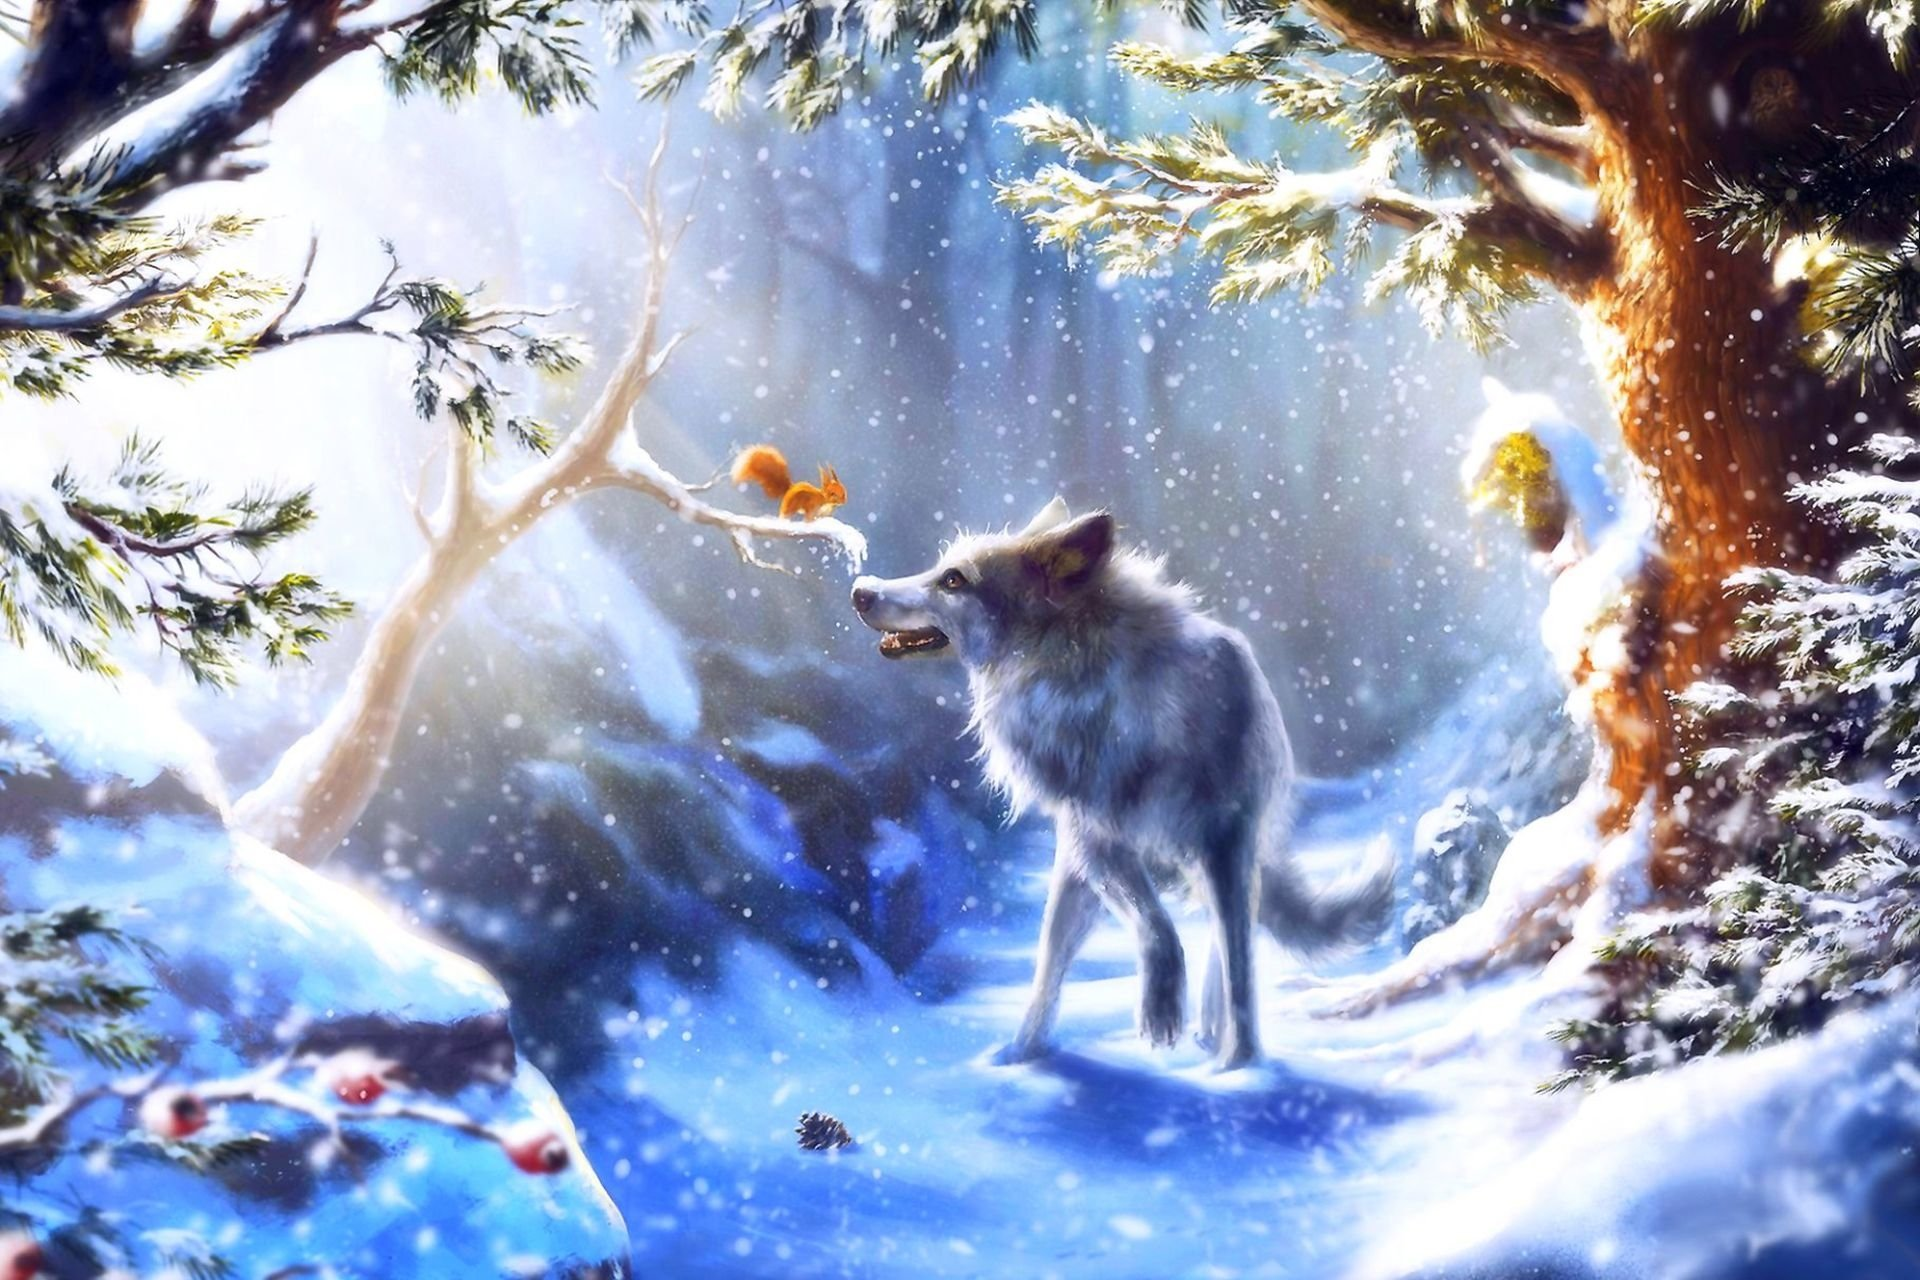 Animal - Wolf  Squirrel Forest Snow Artistic Winter Wallpaper